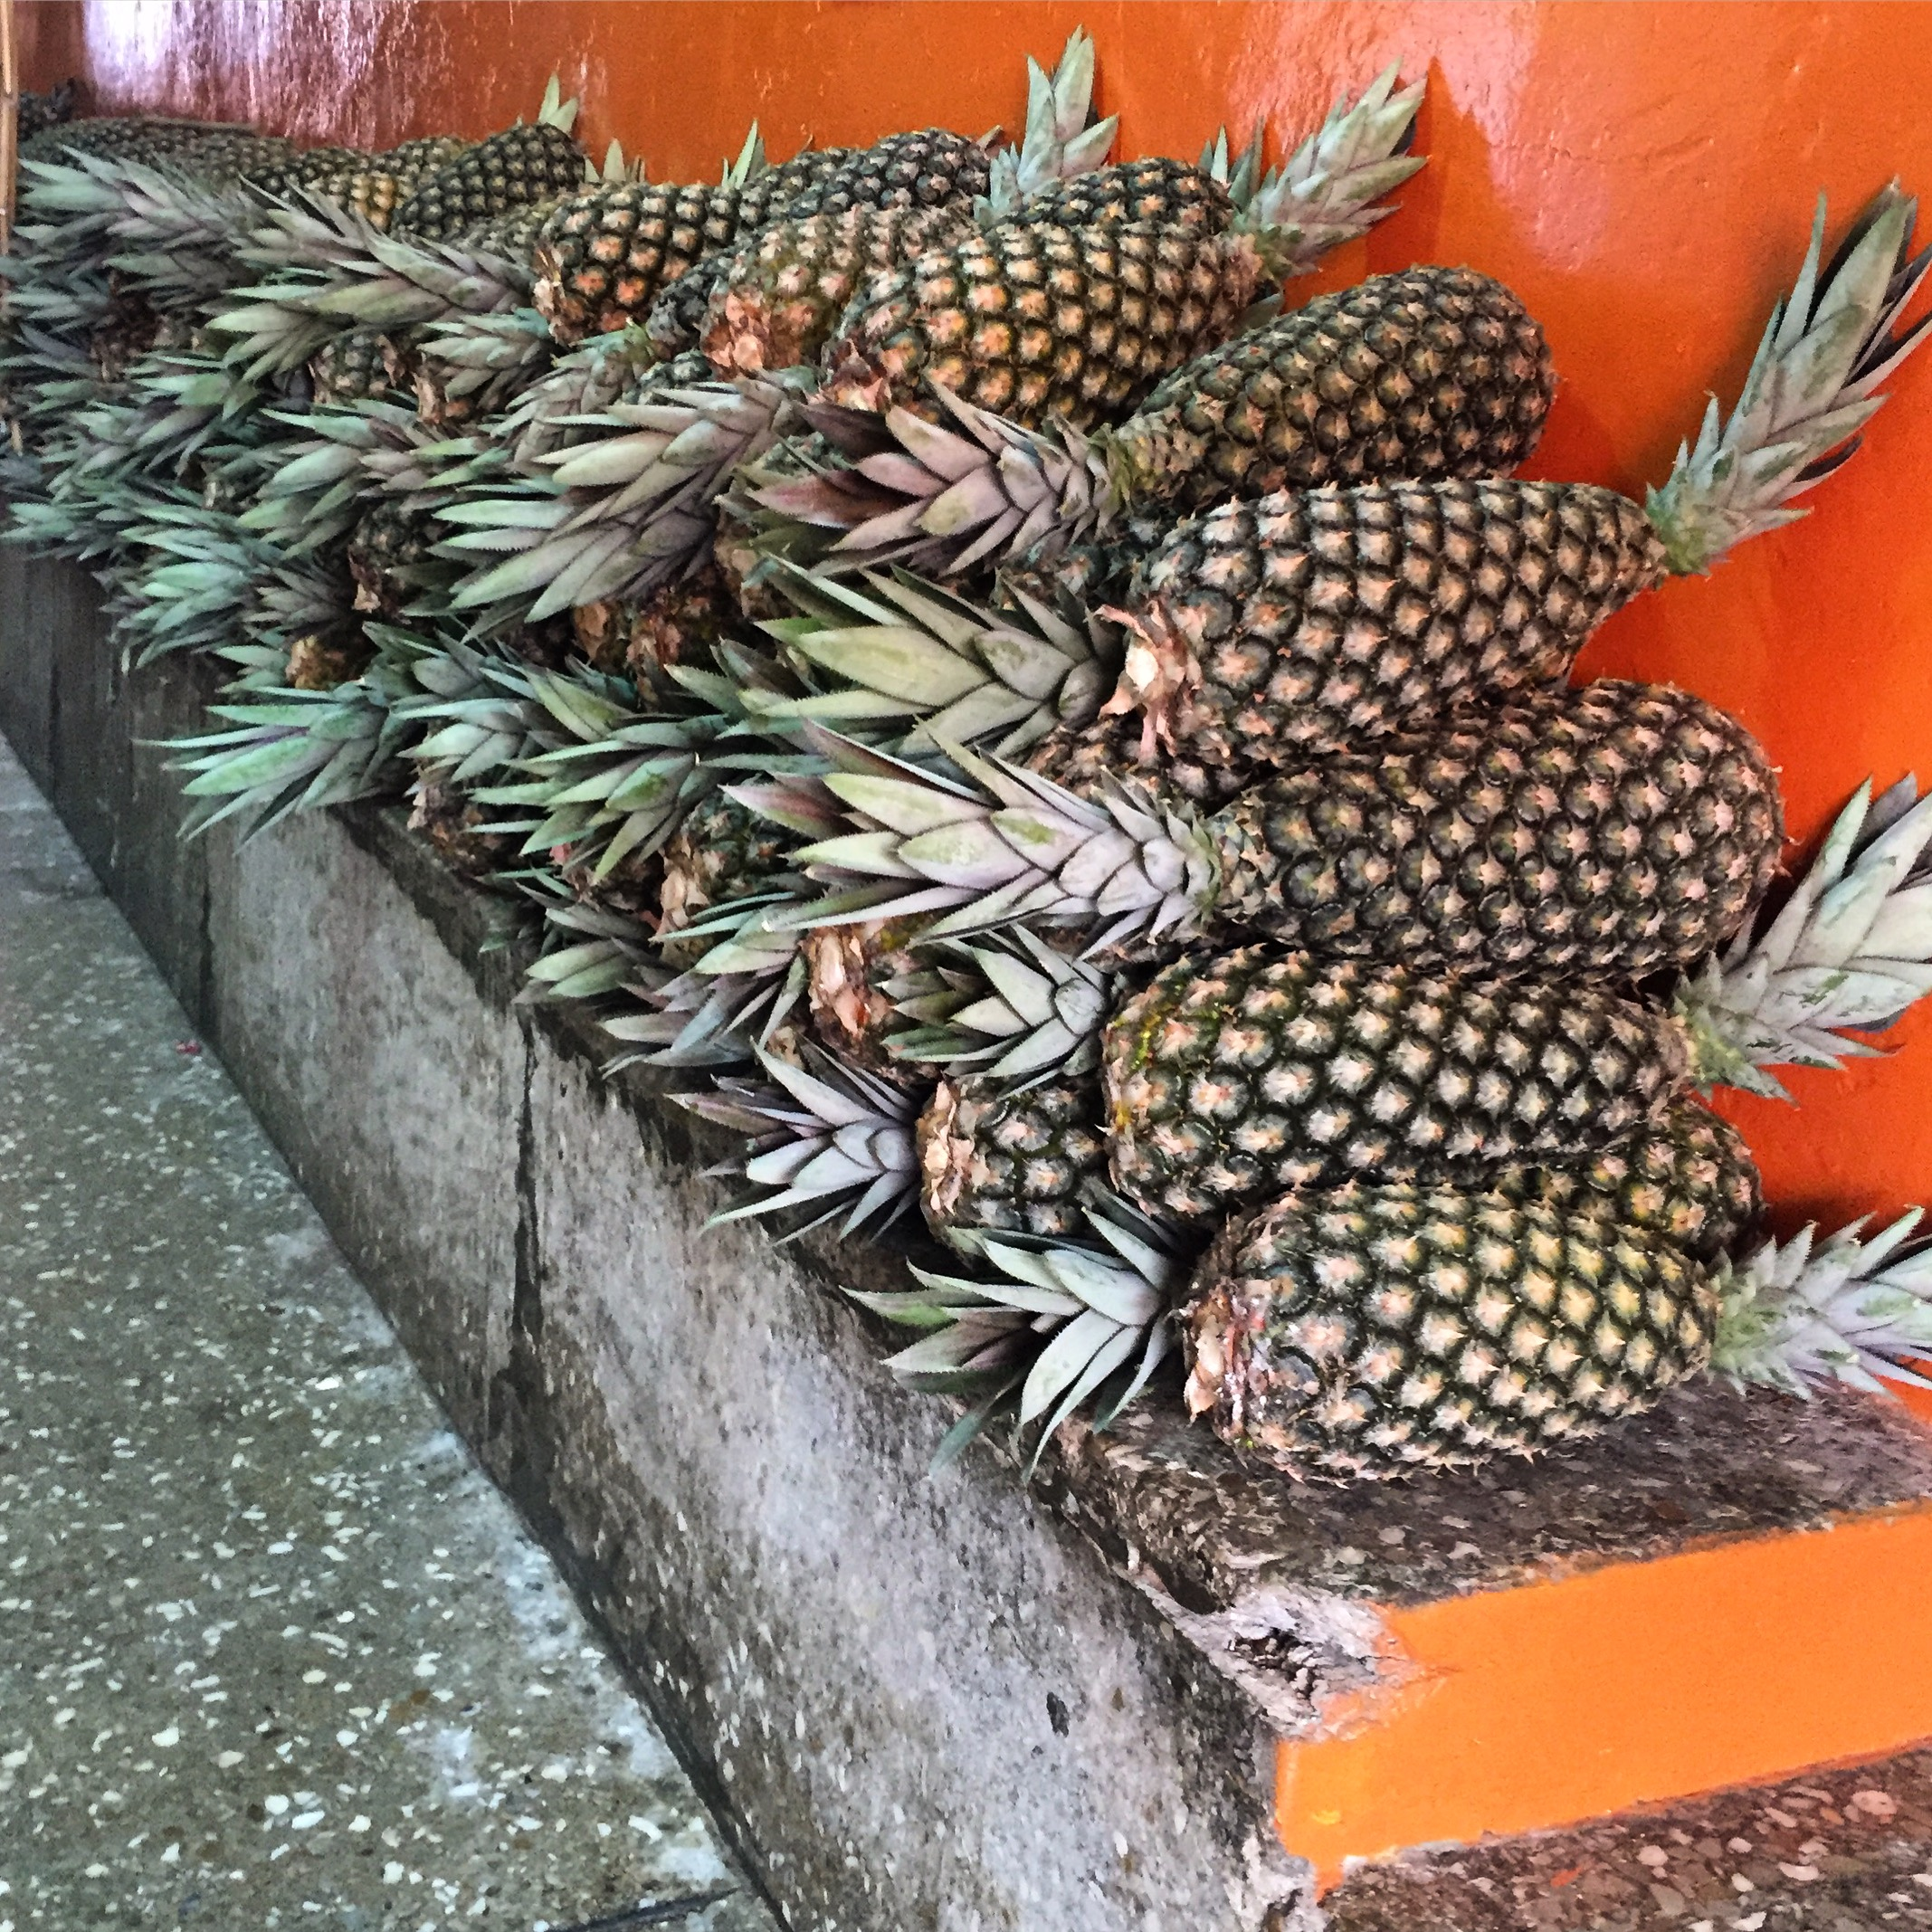 a pile of pineapples stacked on a cement bench against an orange wall